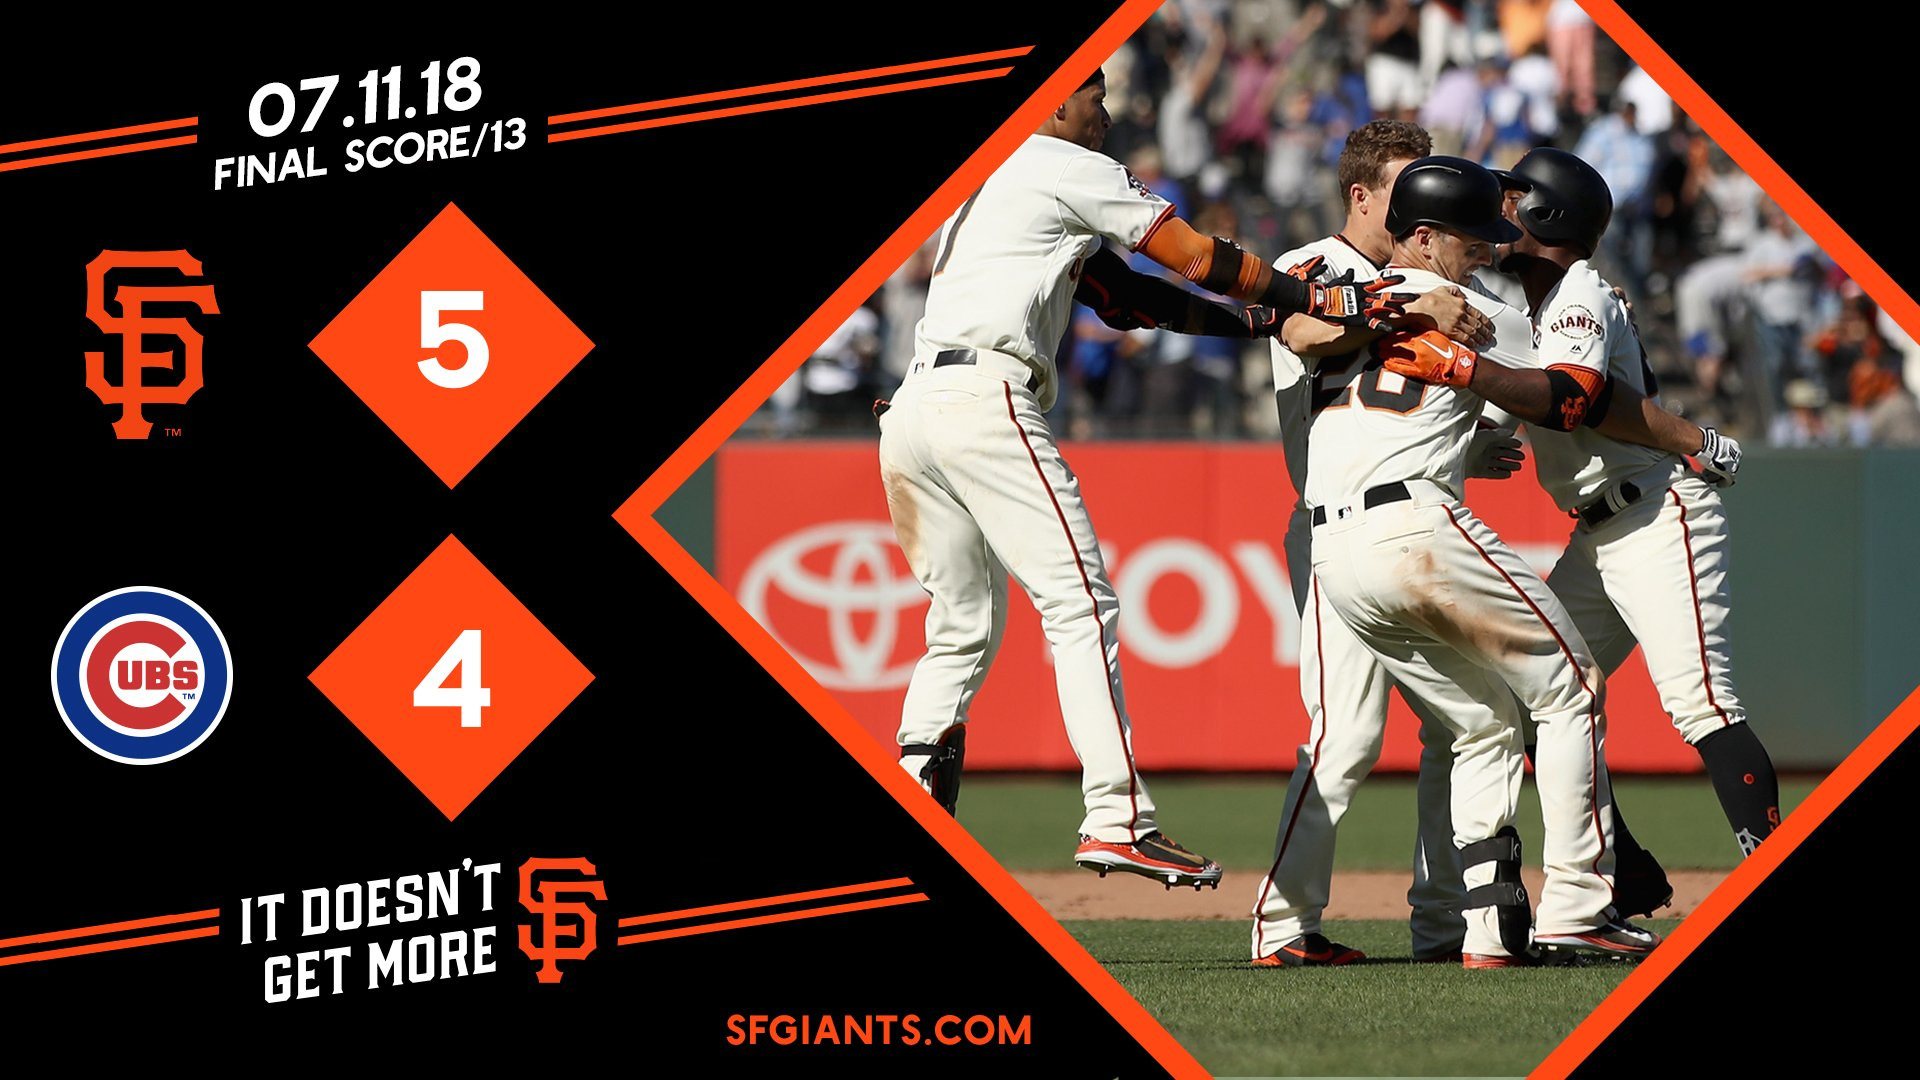 Of course it was @BusterPosey   Recap �� https://t.co/KiIgbsDH6Y   #Walkoff #SFGiants https://t.co/dJ43QZVgI0